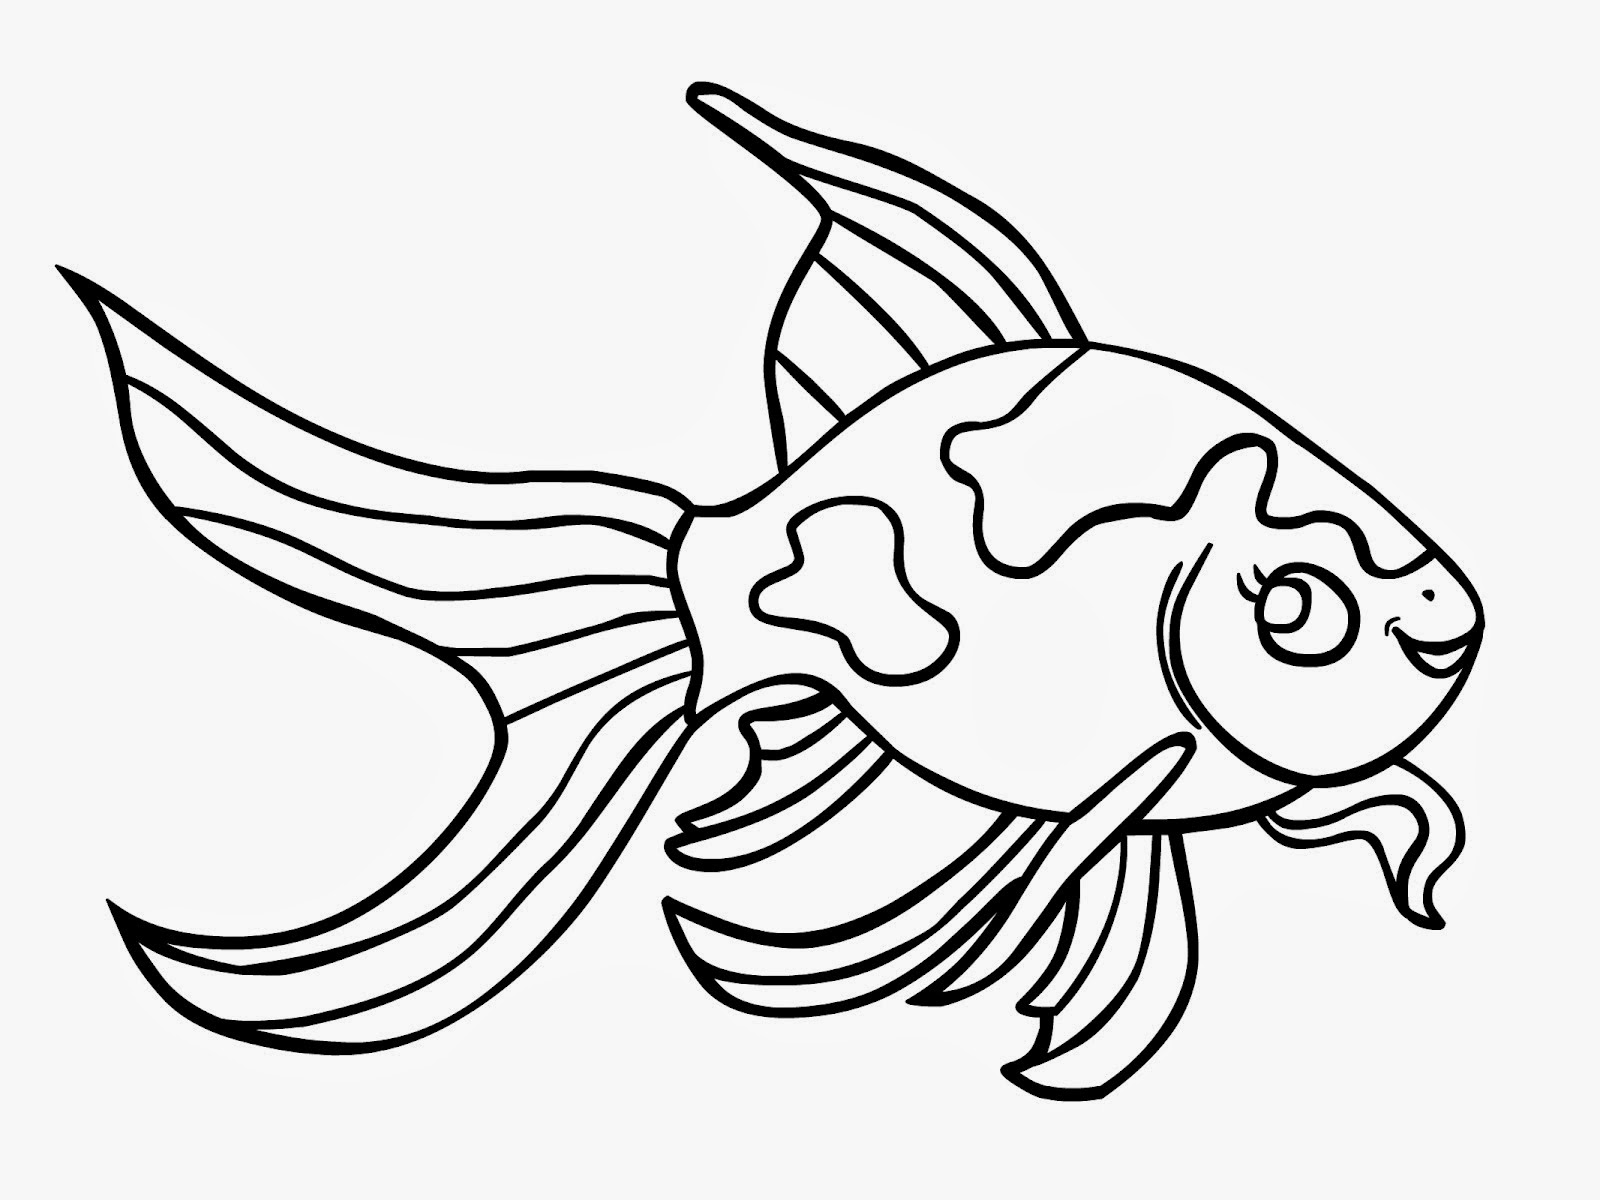 Goldfish clipart black and white jpg free download Goldfish clipart black and white » Clipart Station jpg free download